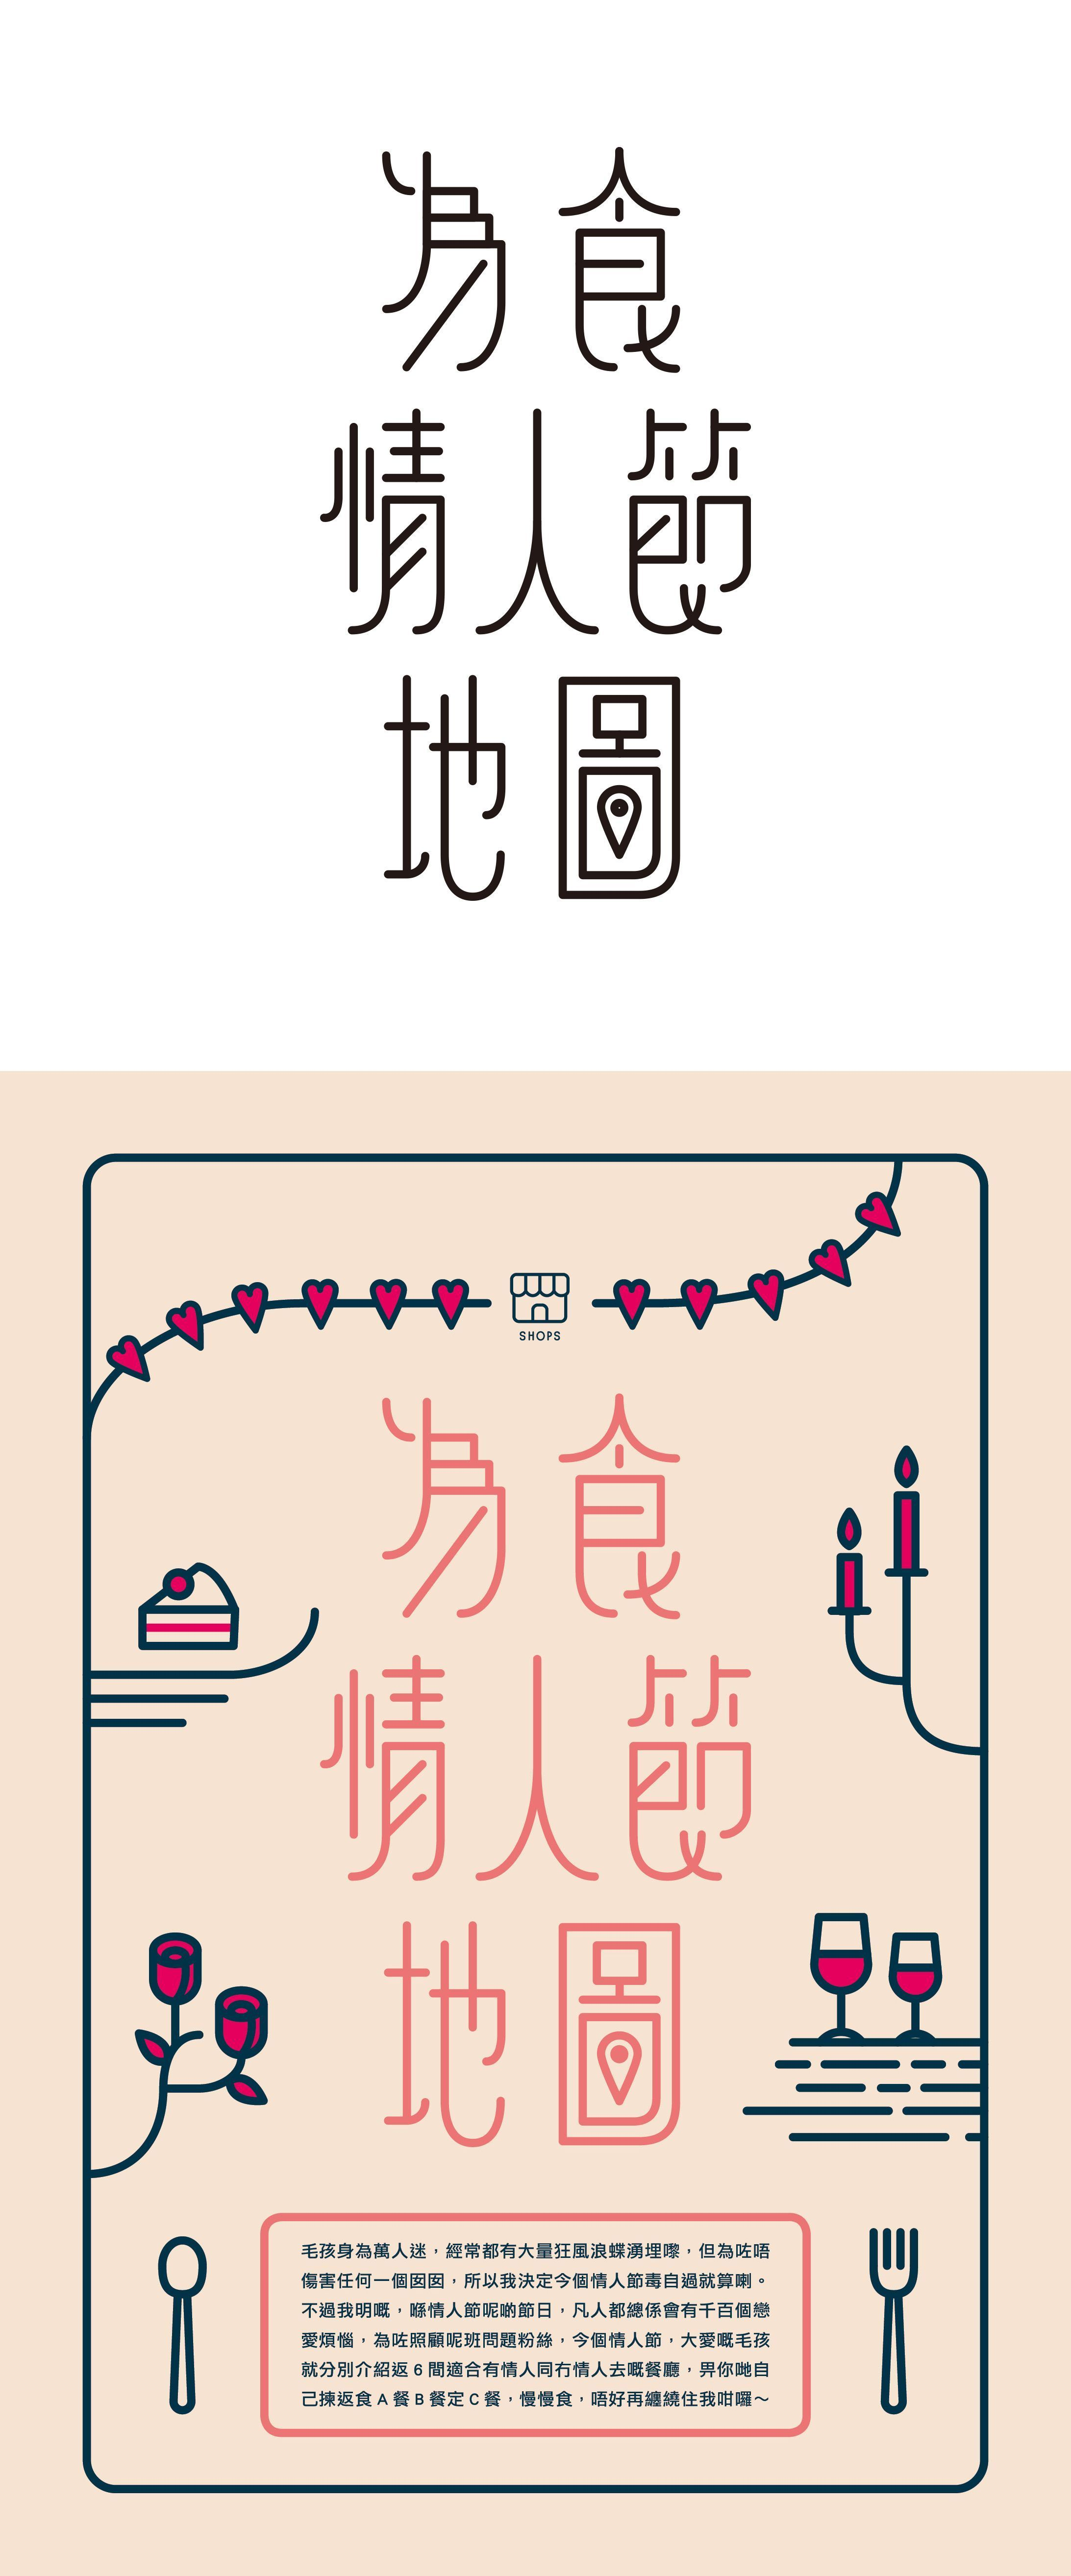 Typography / Layout for 100毛 Issue #100 by minglui. #chinesetypography Typography / Layout for 100毛 Issue #100 by minglui. #chinesetypography Typography / Layout for 100毛 Issue #100 by minglui. #chinesetypography Typography / Layout for 100毛 Issue #100 by minglui. #chinesetypography